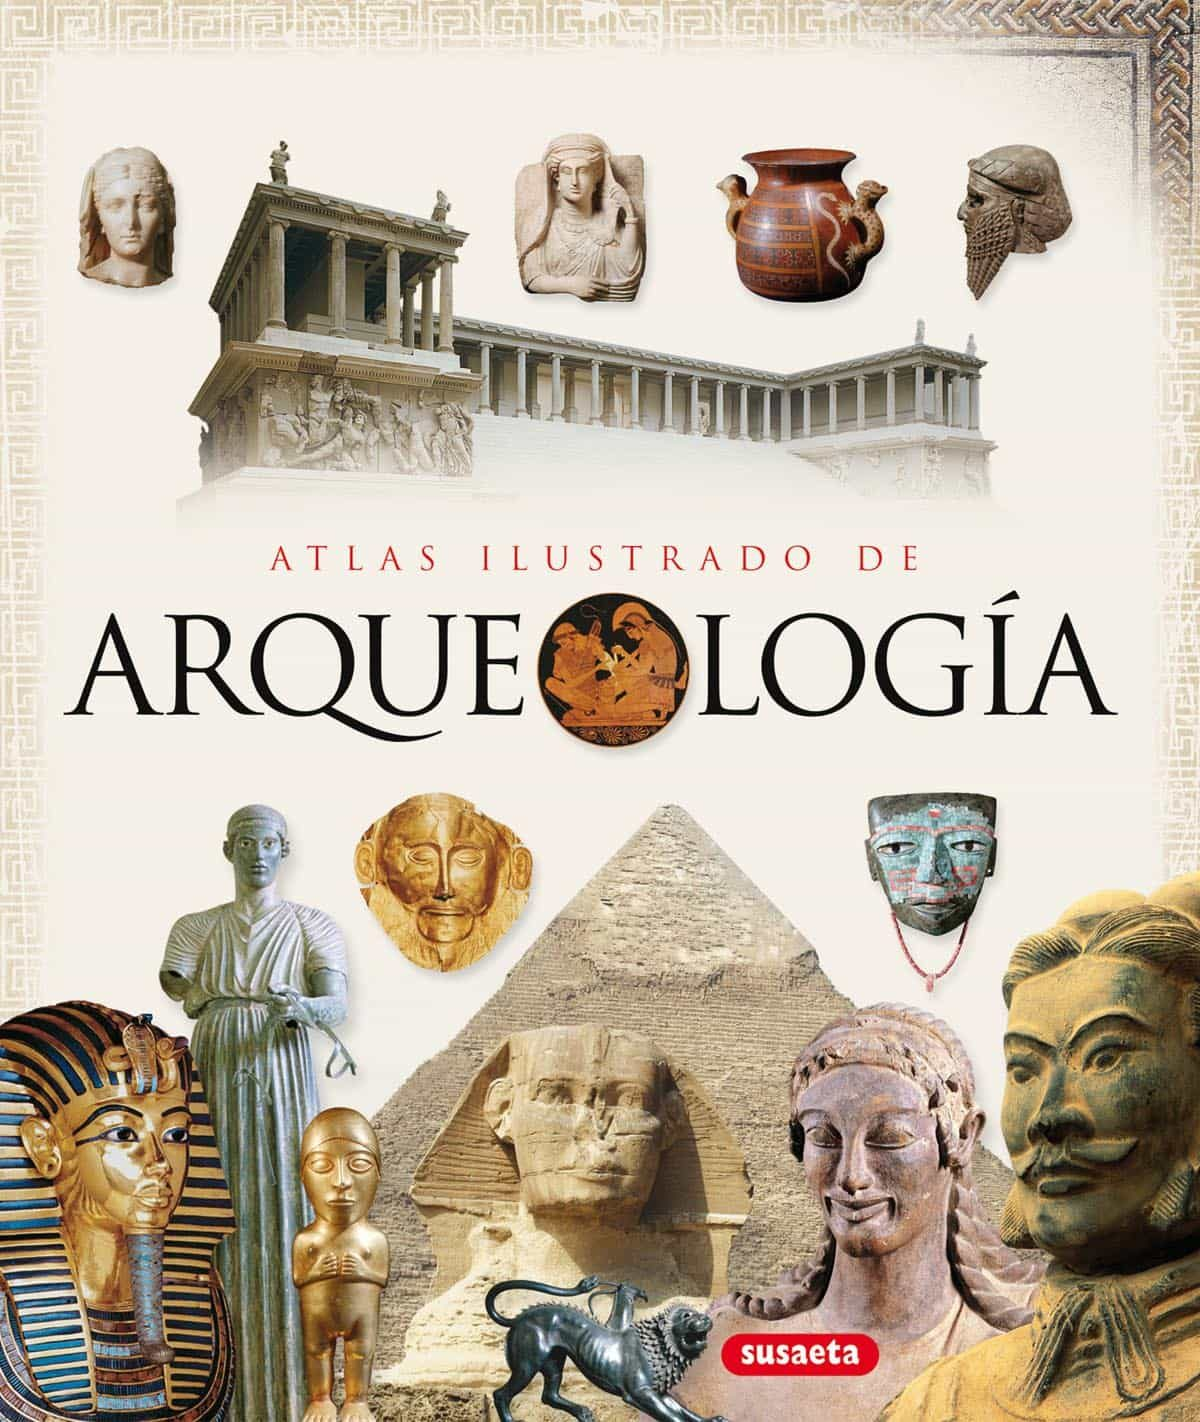 Libros Arqueologia Download Behold No Cavities A Visit To The Dentist